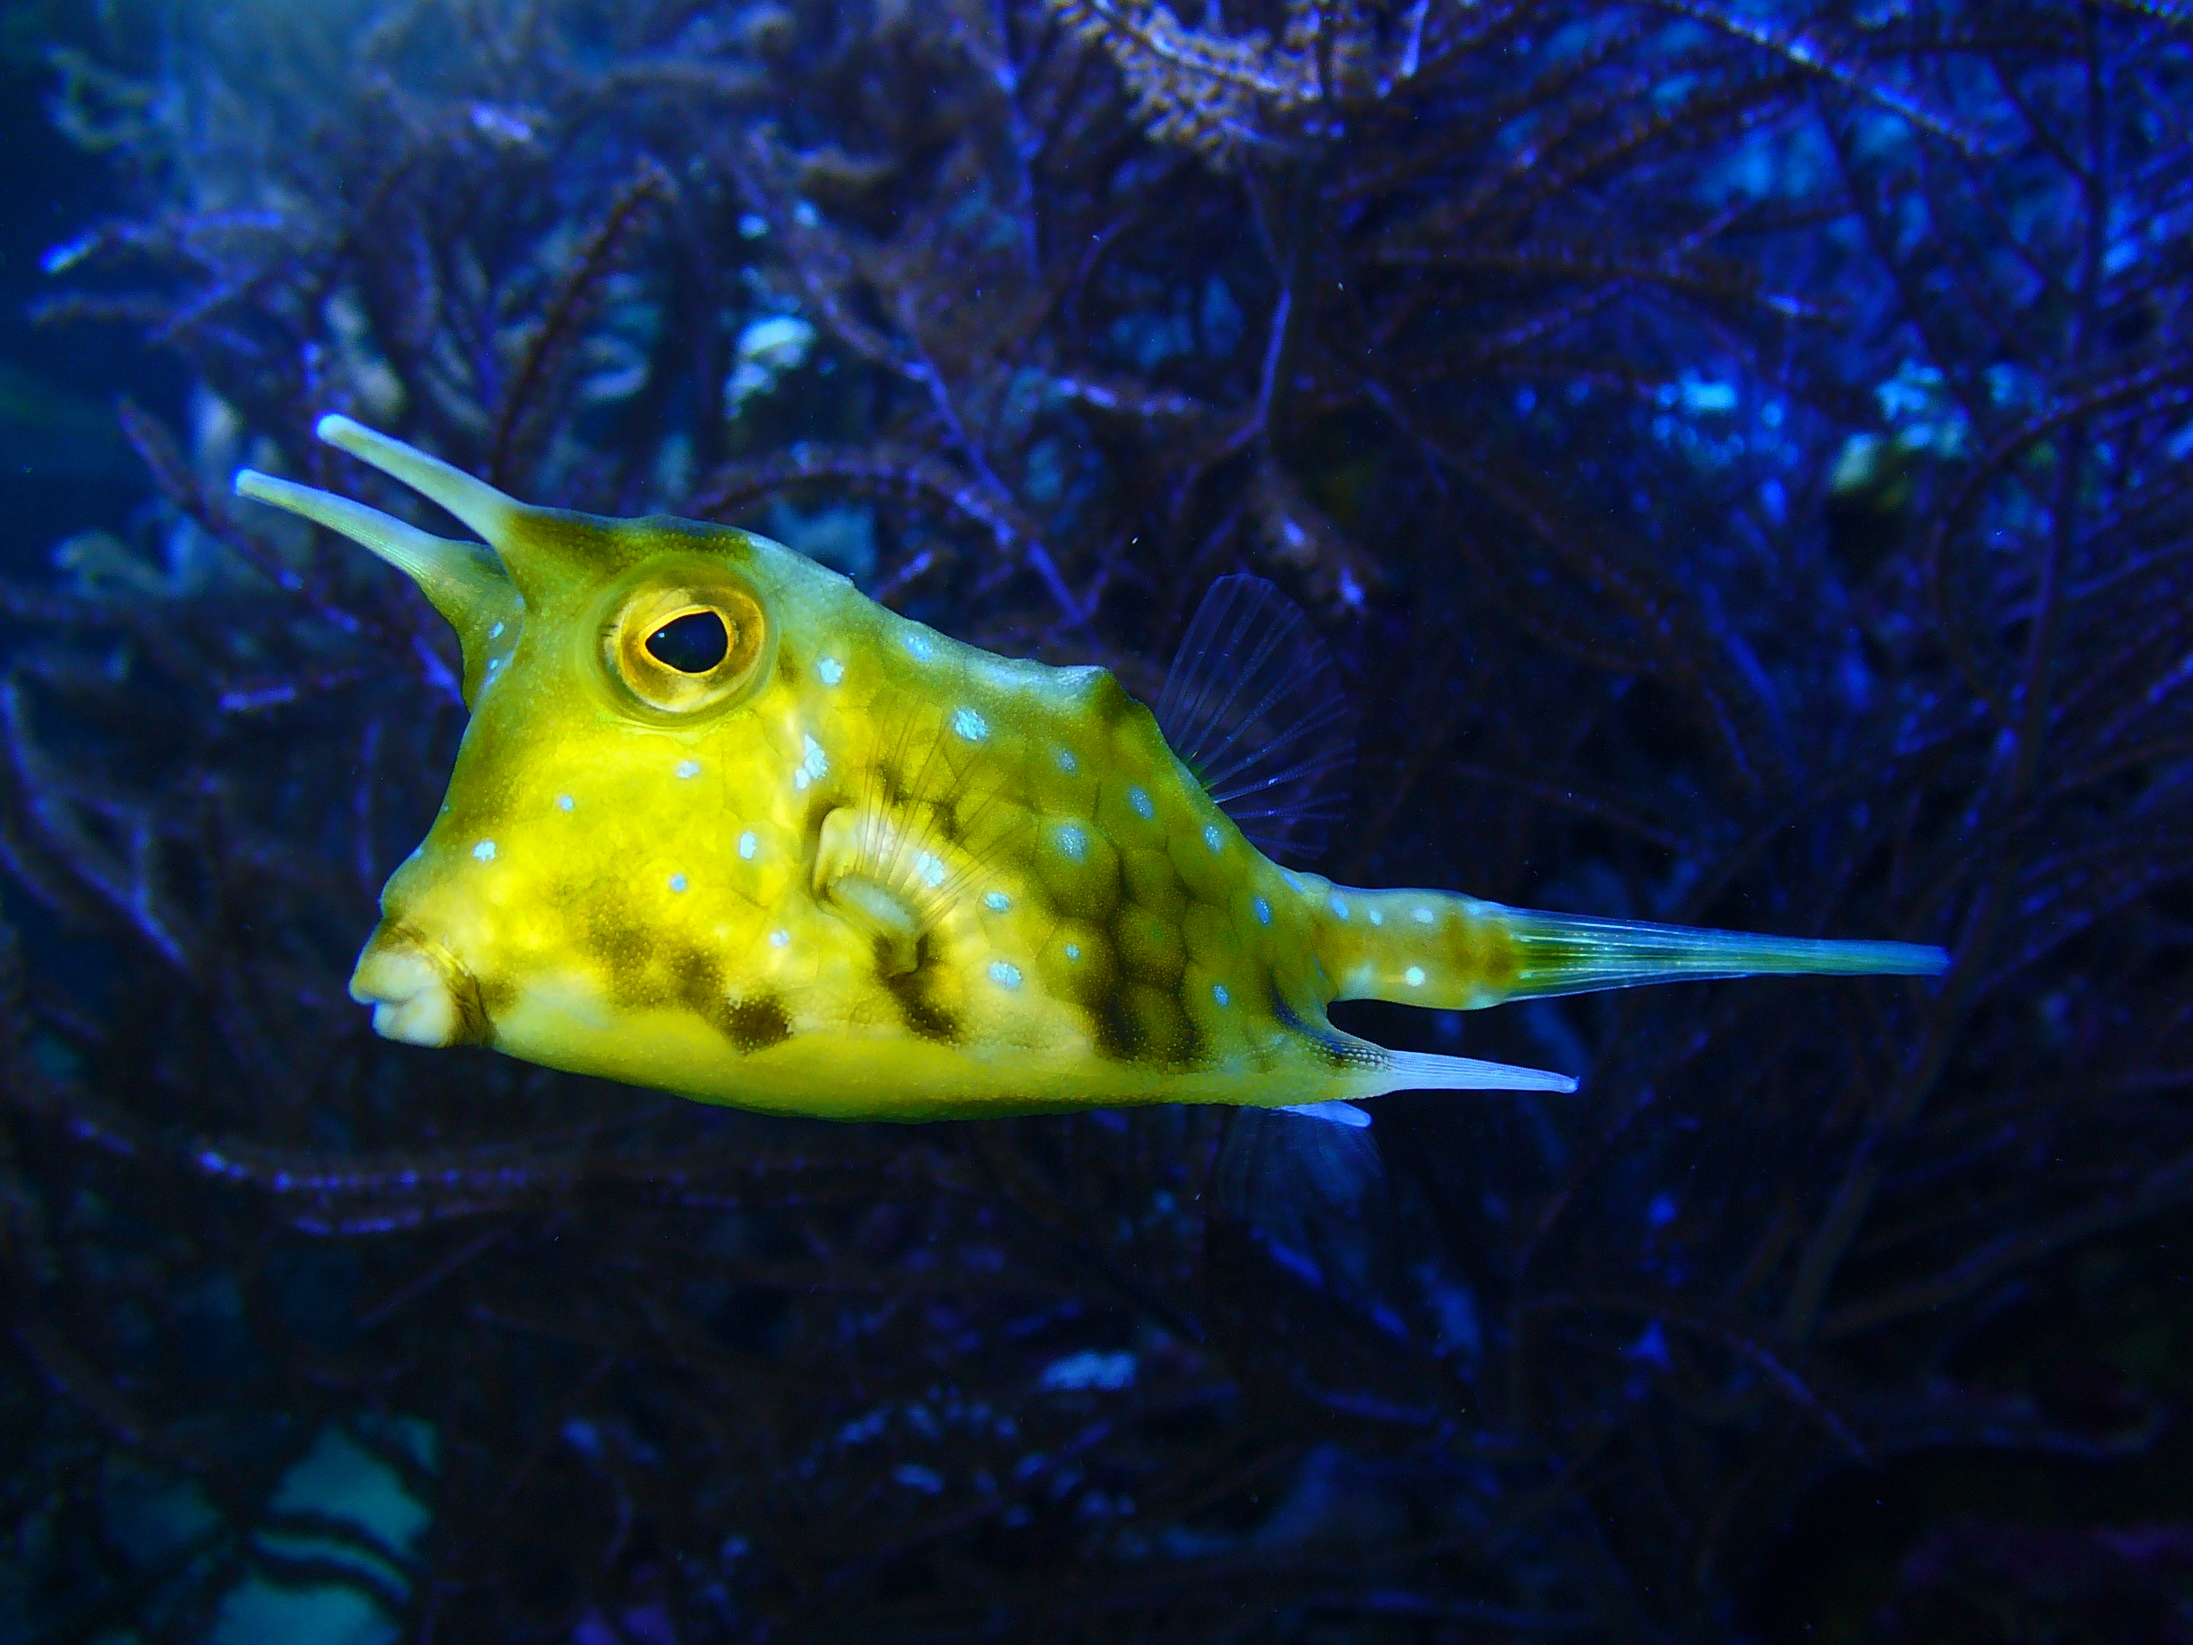 longhorn cowfish characteristics longhorn cowfish can grow up to 20 ...